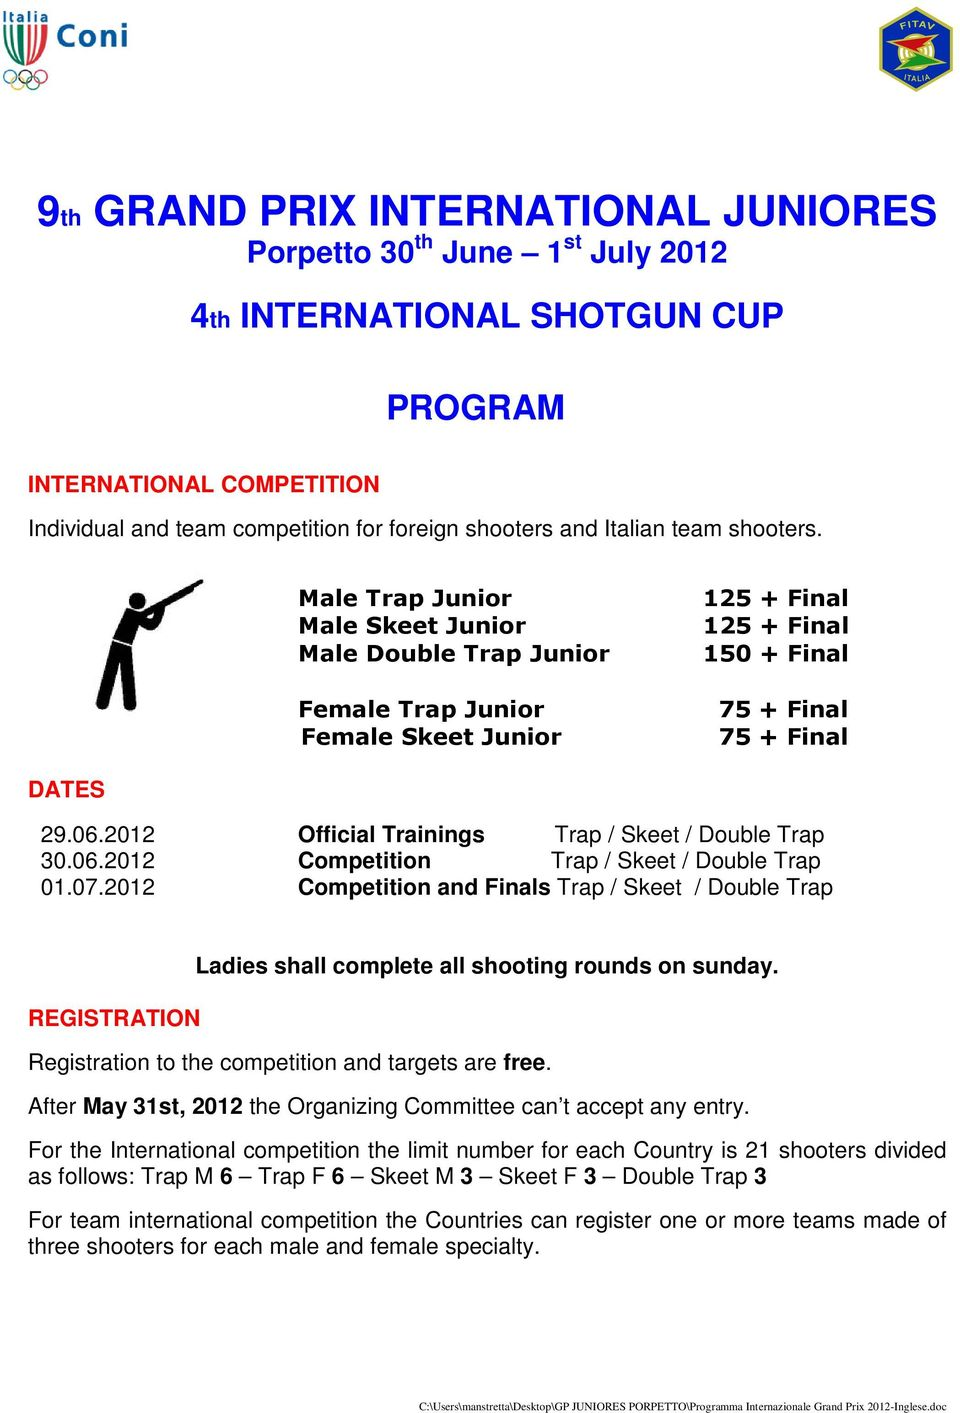 2012 Official Trainings Trap / Skeet / Double Trap 30.06.2012 Competition Trap / Skeet / Double Trap 01.07.